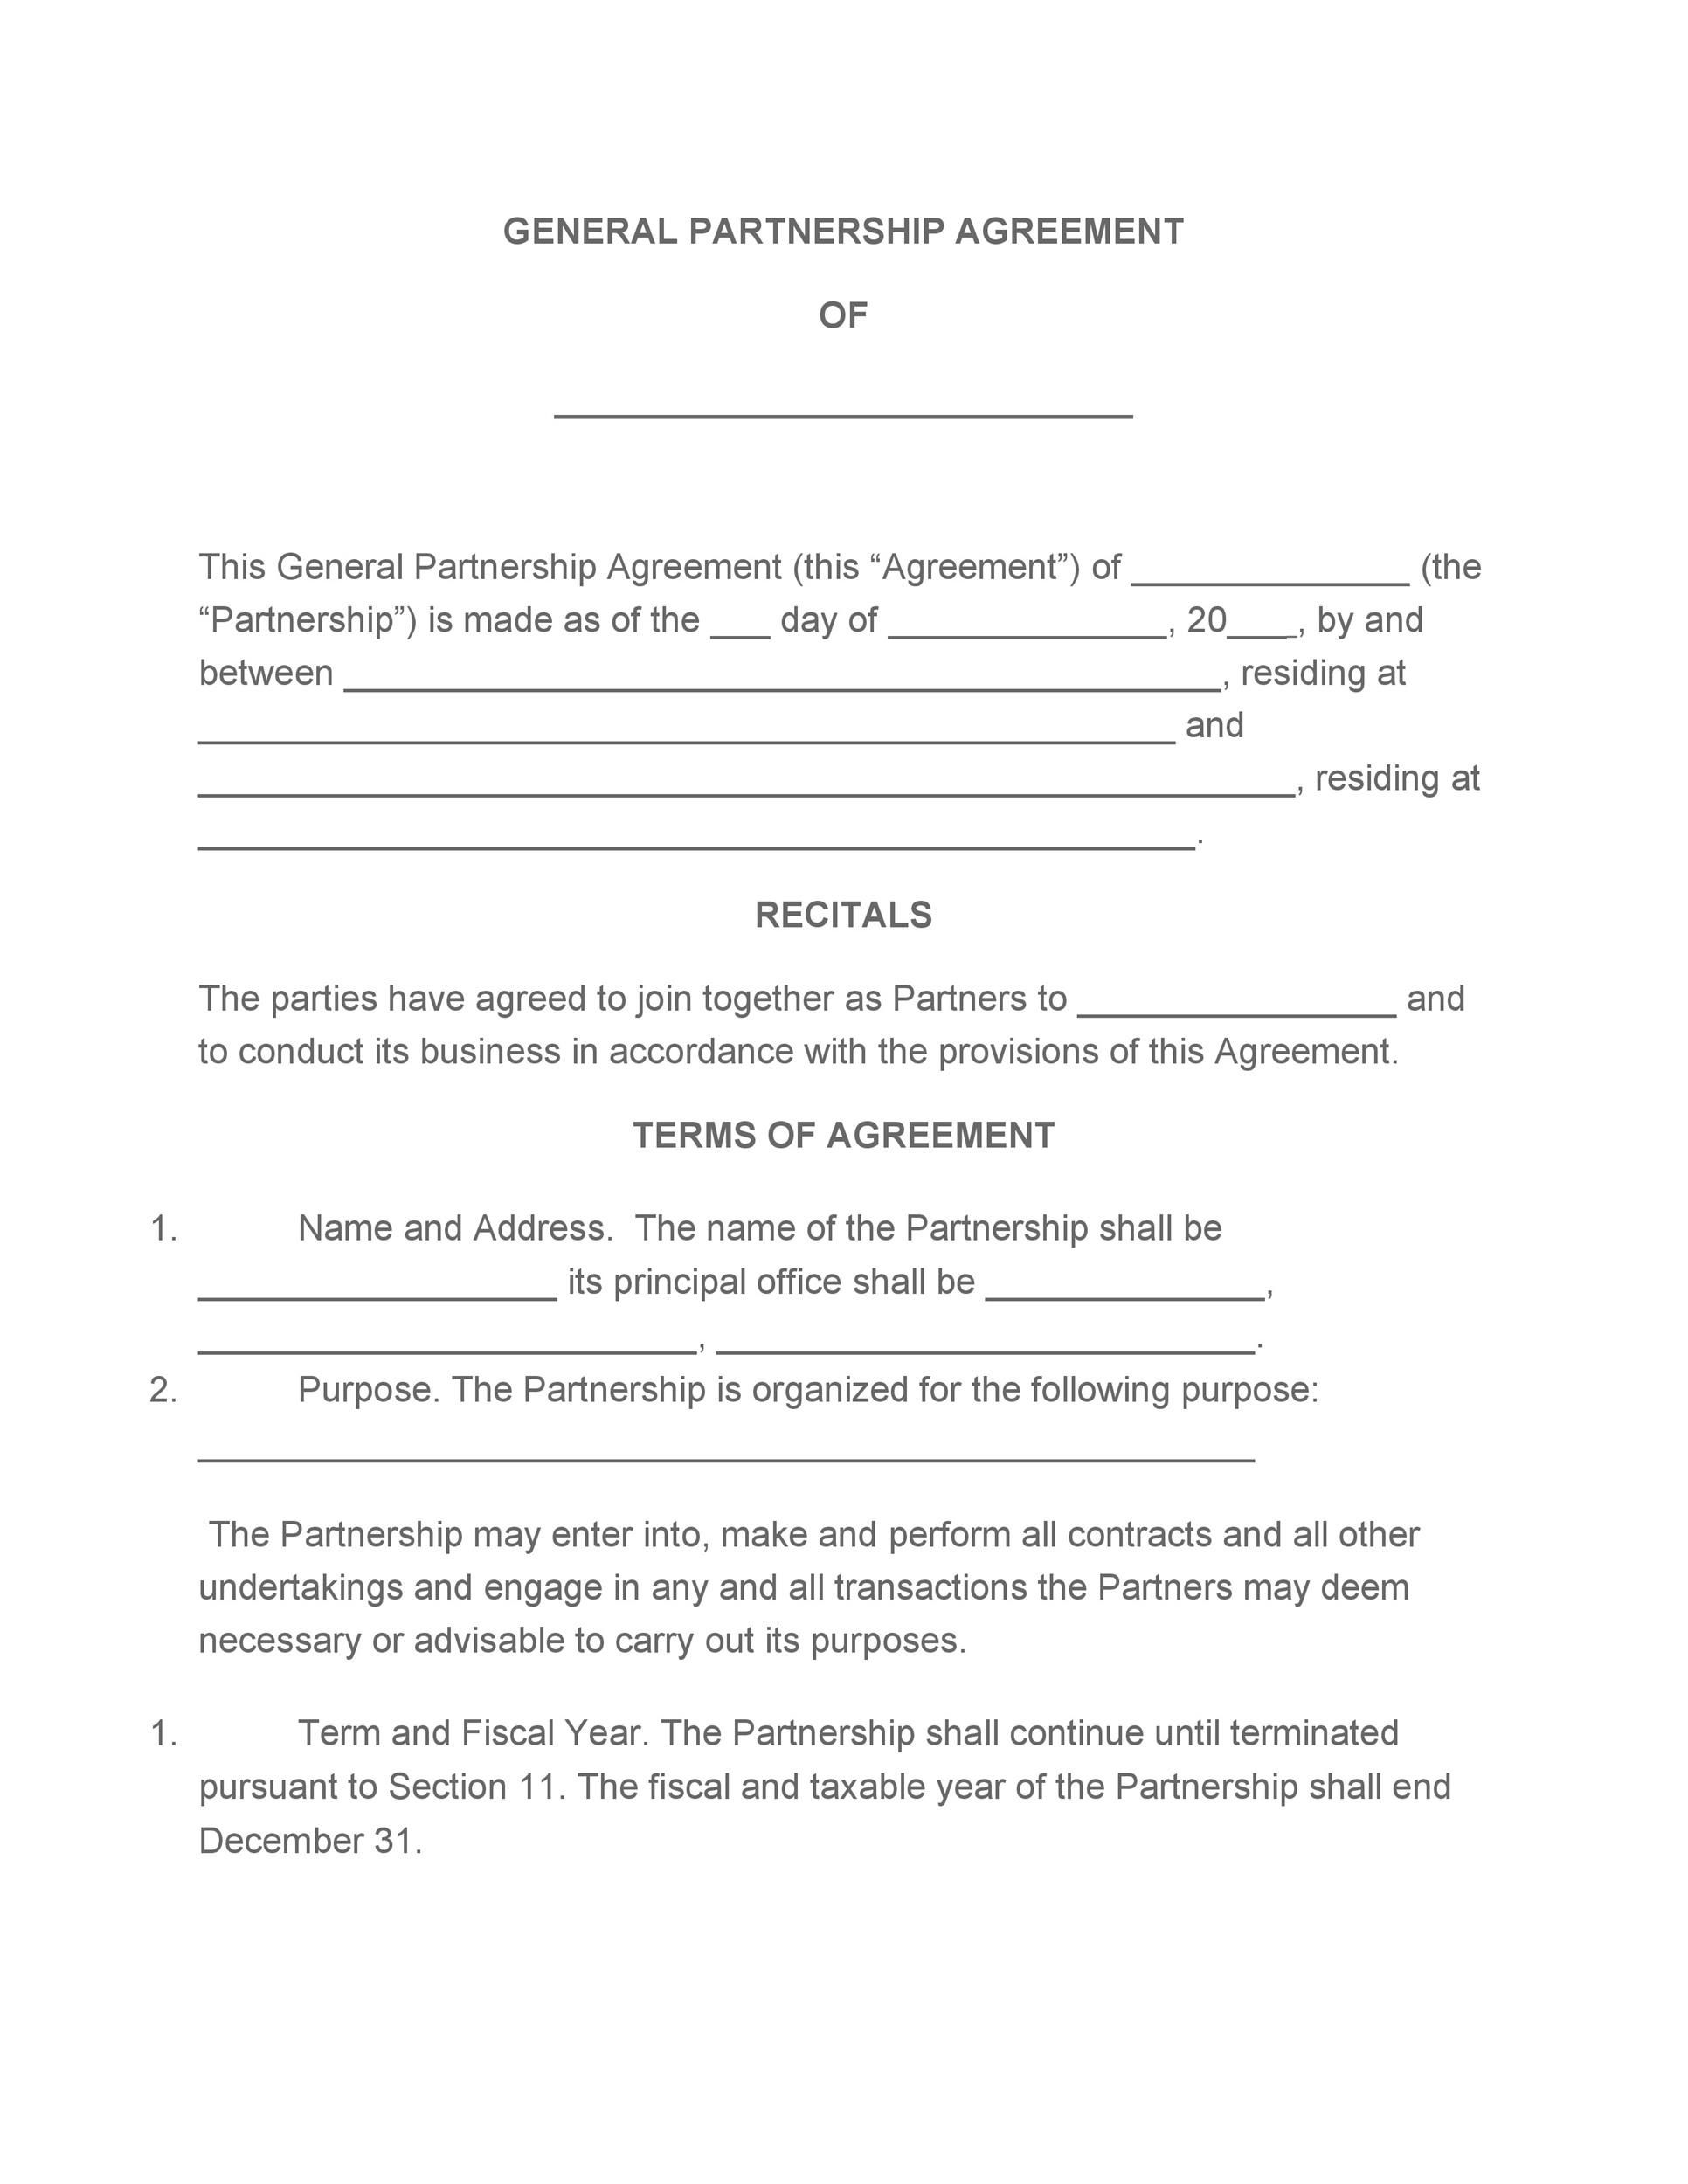 005 Remarkable Partnership Agreement Template Free Picture  Llc Example SampleFull